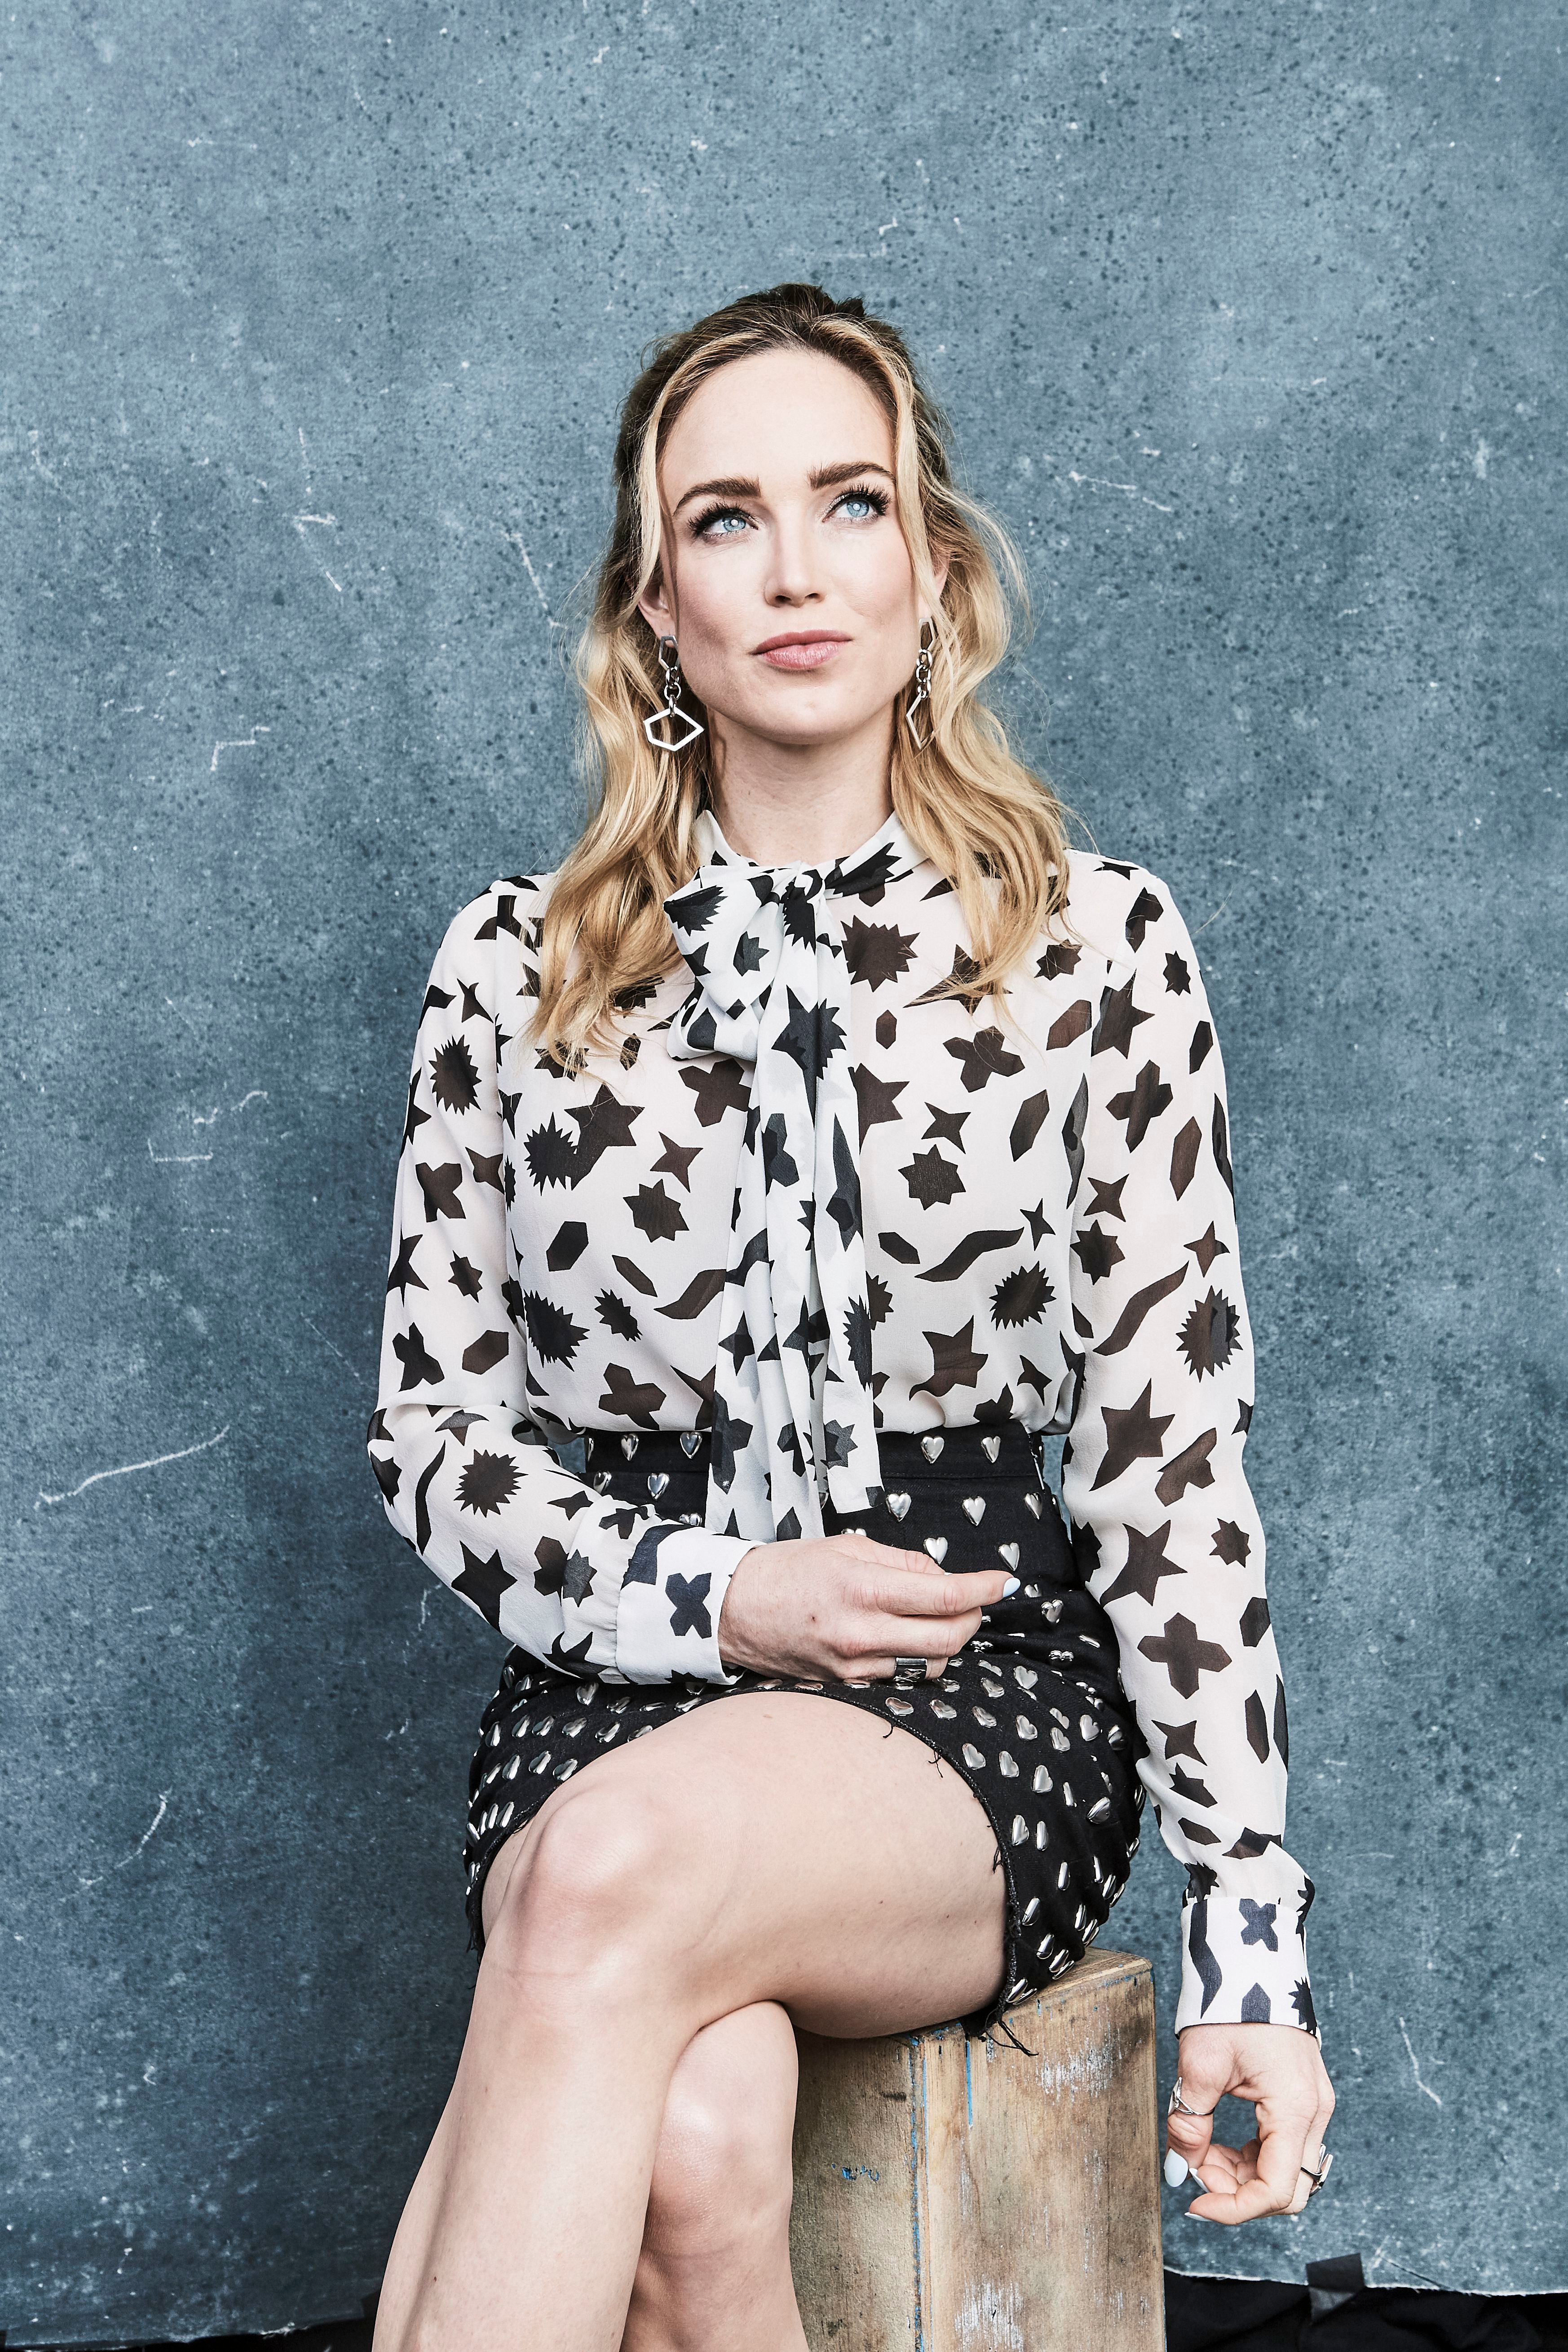 Pin by 💎🌙👑 on Caity Lotz | Women, Female celebrity crush